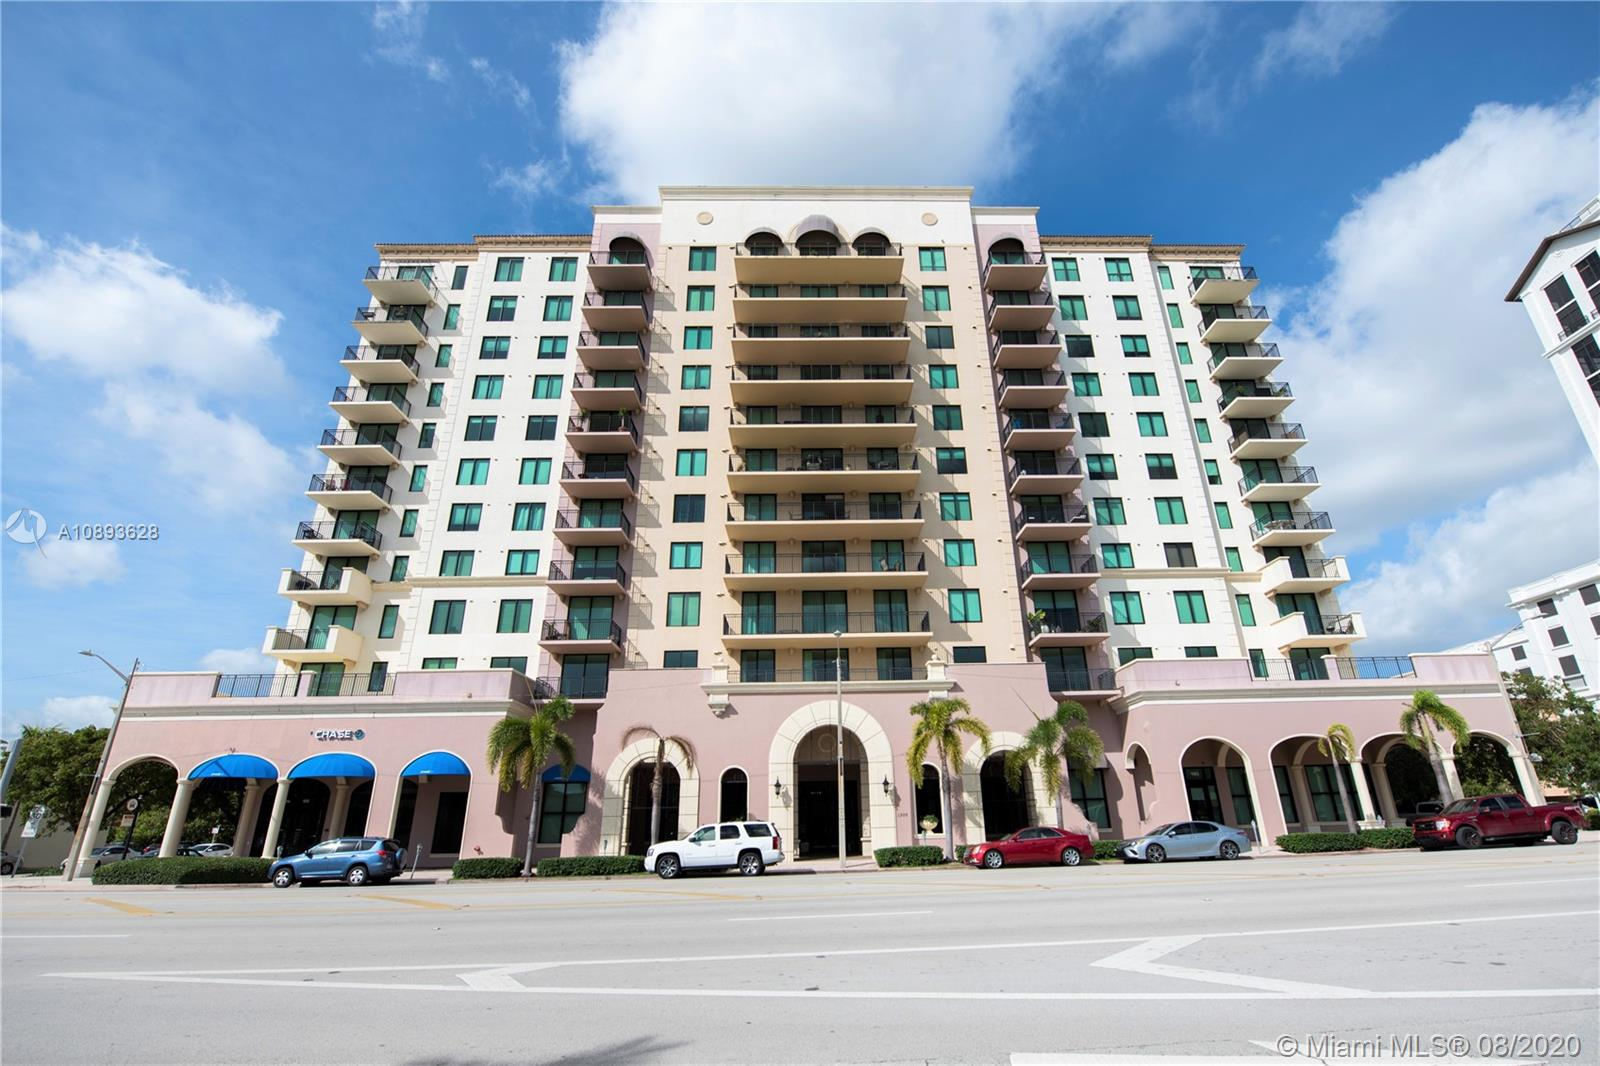 CONDO IN THE HEART OF CORAL GABLES. ONLY FEW STEPS OFF MIRACLE MILE AND PONCE DE LEON. MINUTES FROM MERRICK PARK AND WALK TO SHOPS AN DINNING. CLOSE TO AIRPORT. INCLUDES WOOD CABINETS IN KITCHEN AND BATHROOMS, GRANITE COUNTER TOPS IN KITCH EN, MARBLE COUNTER TOPS IN BATHROOMS, ALL STAINLESS STEEL KITCHEN APPLIANCES. IMPACT WINDOWS AND CALIFORNIA WALKING CLOSETS. TWO ASSIGNED PARKIG SPACES